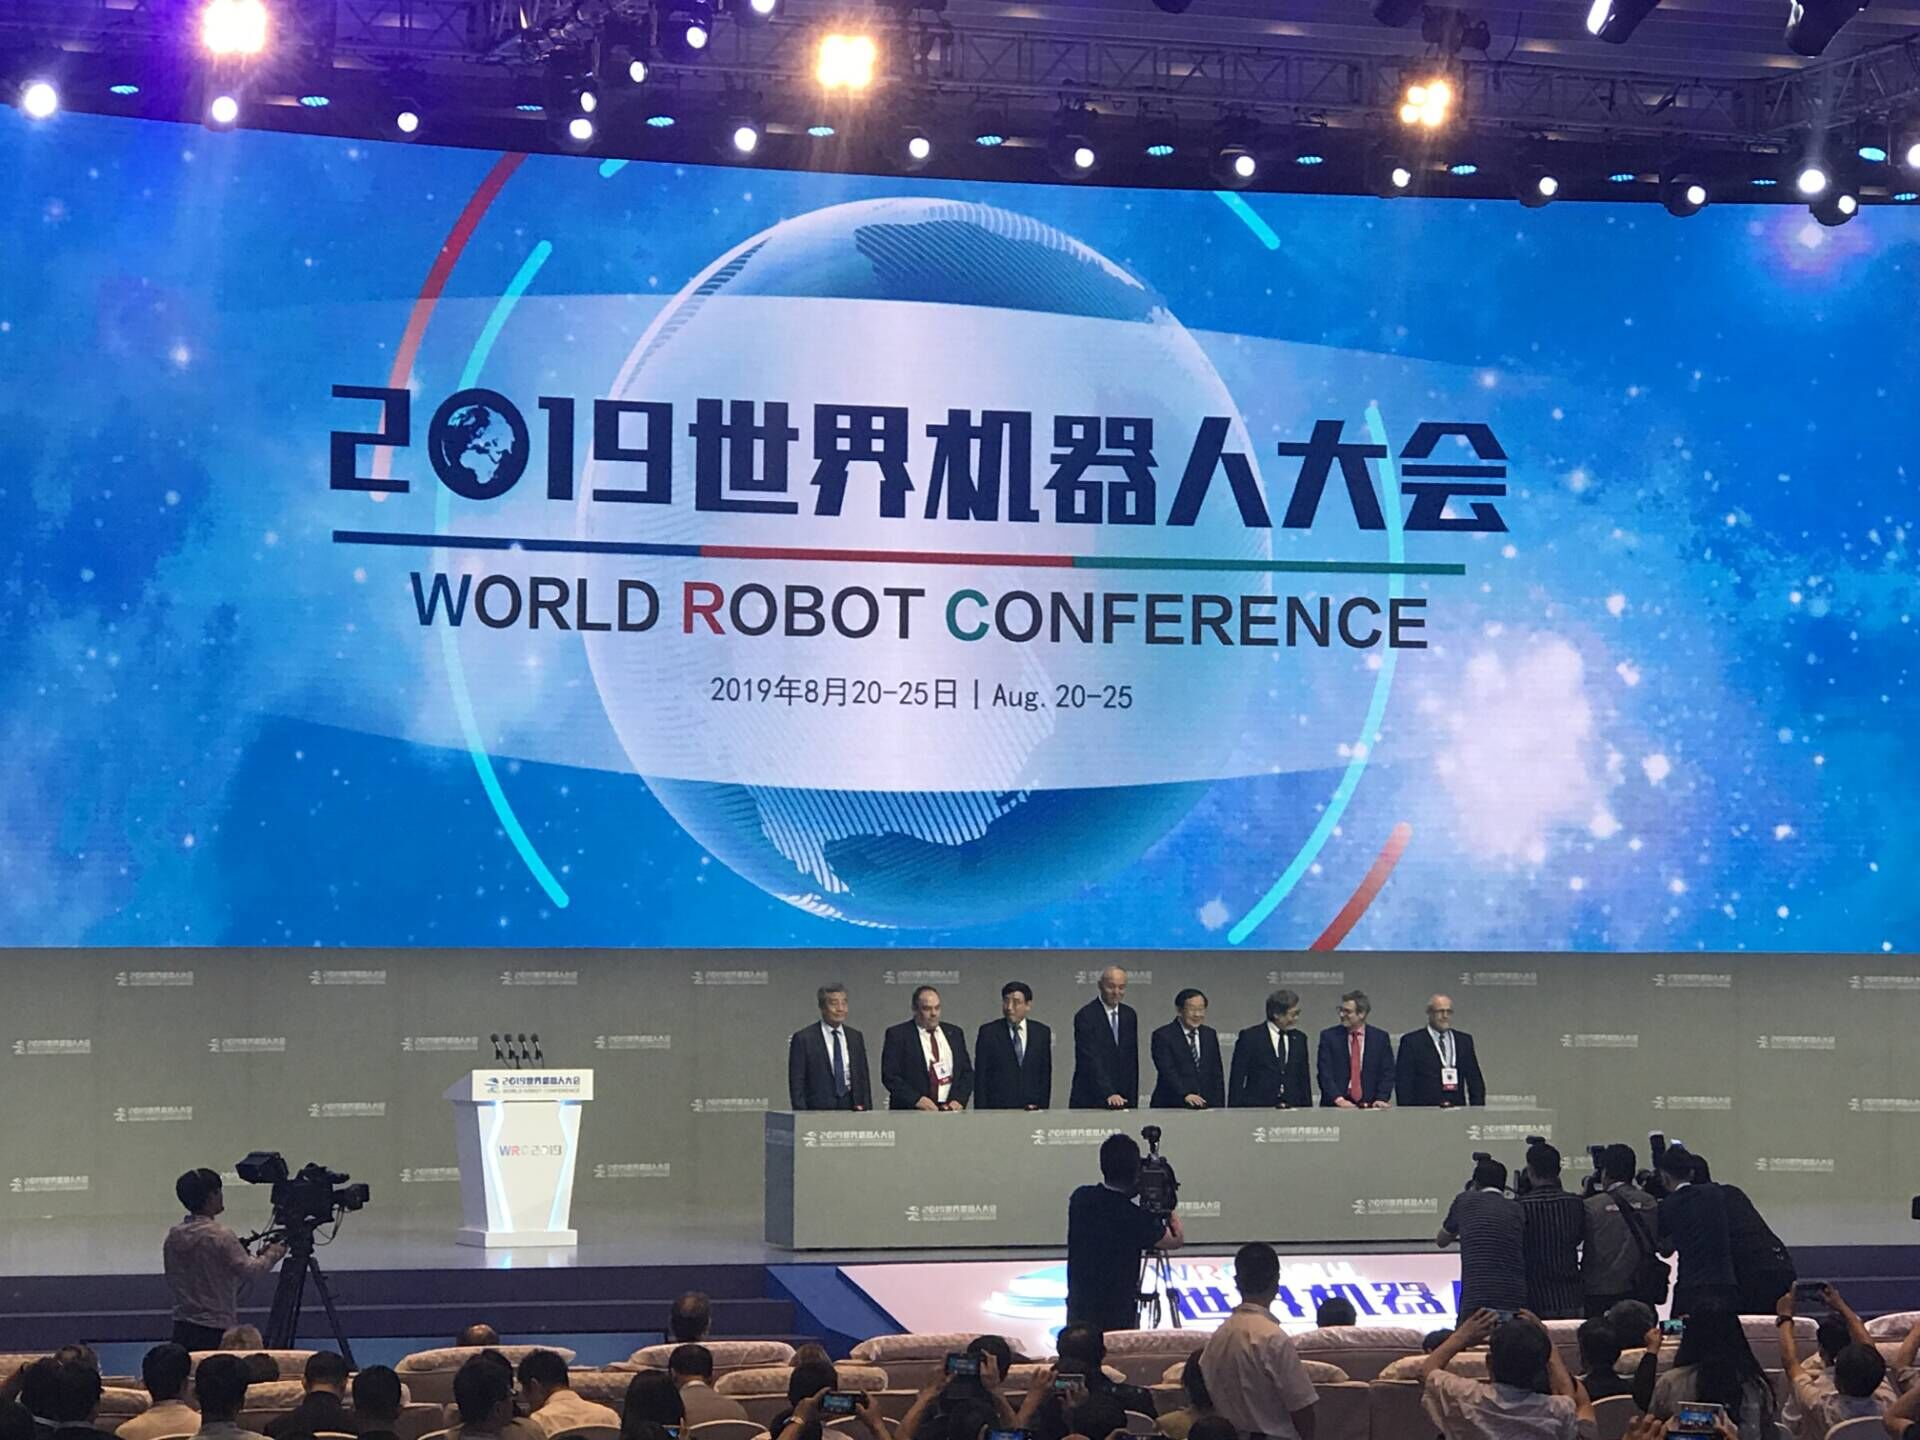 World Robot Conference opens in Beijing